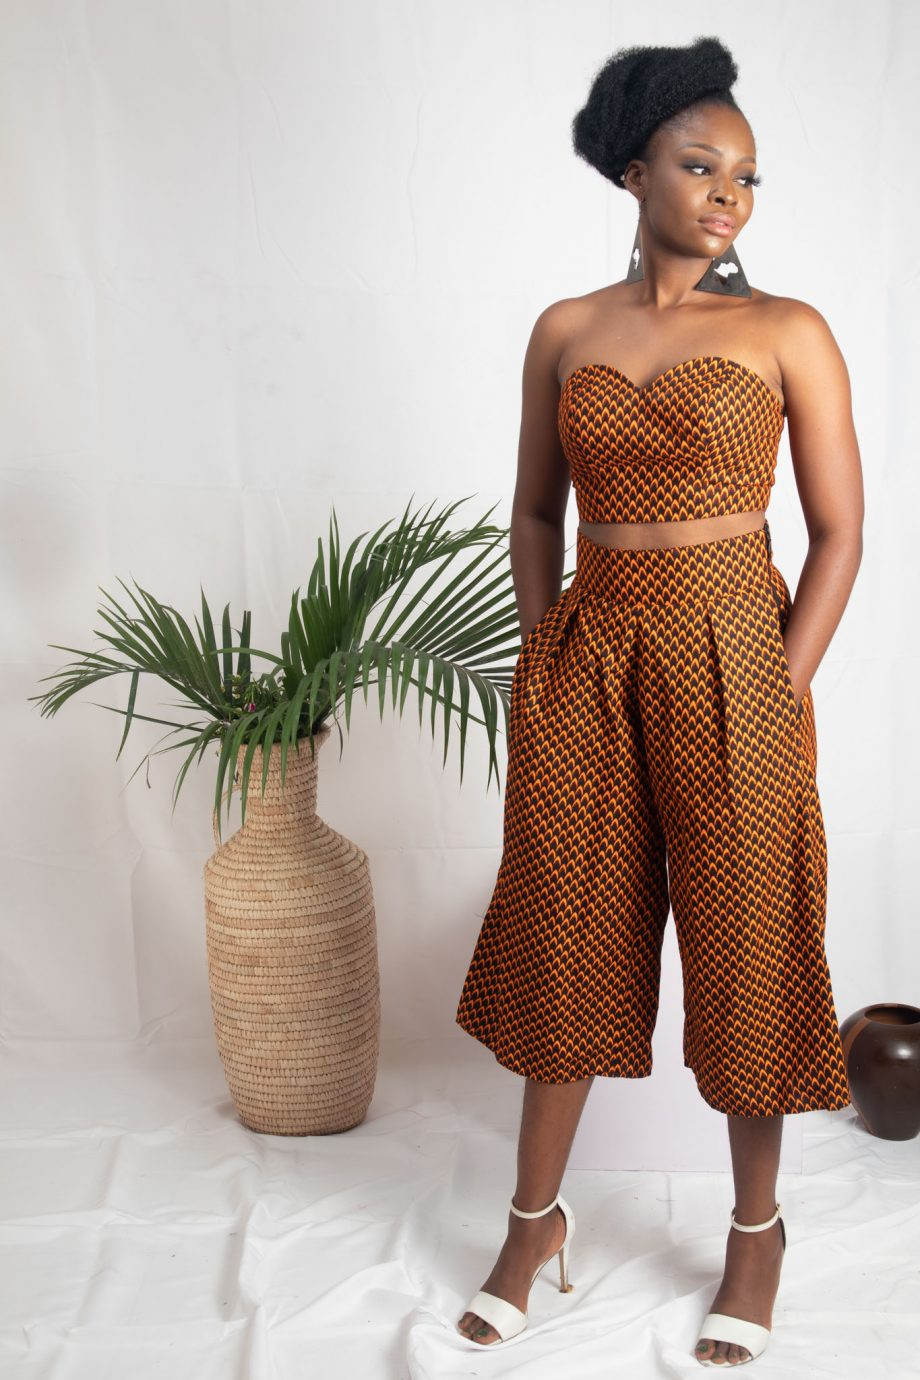 African Print Culottes and Matching Crop Top REMI by Naborhi